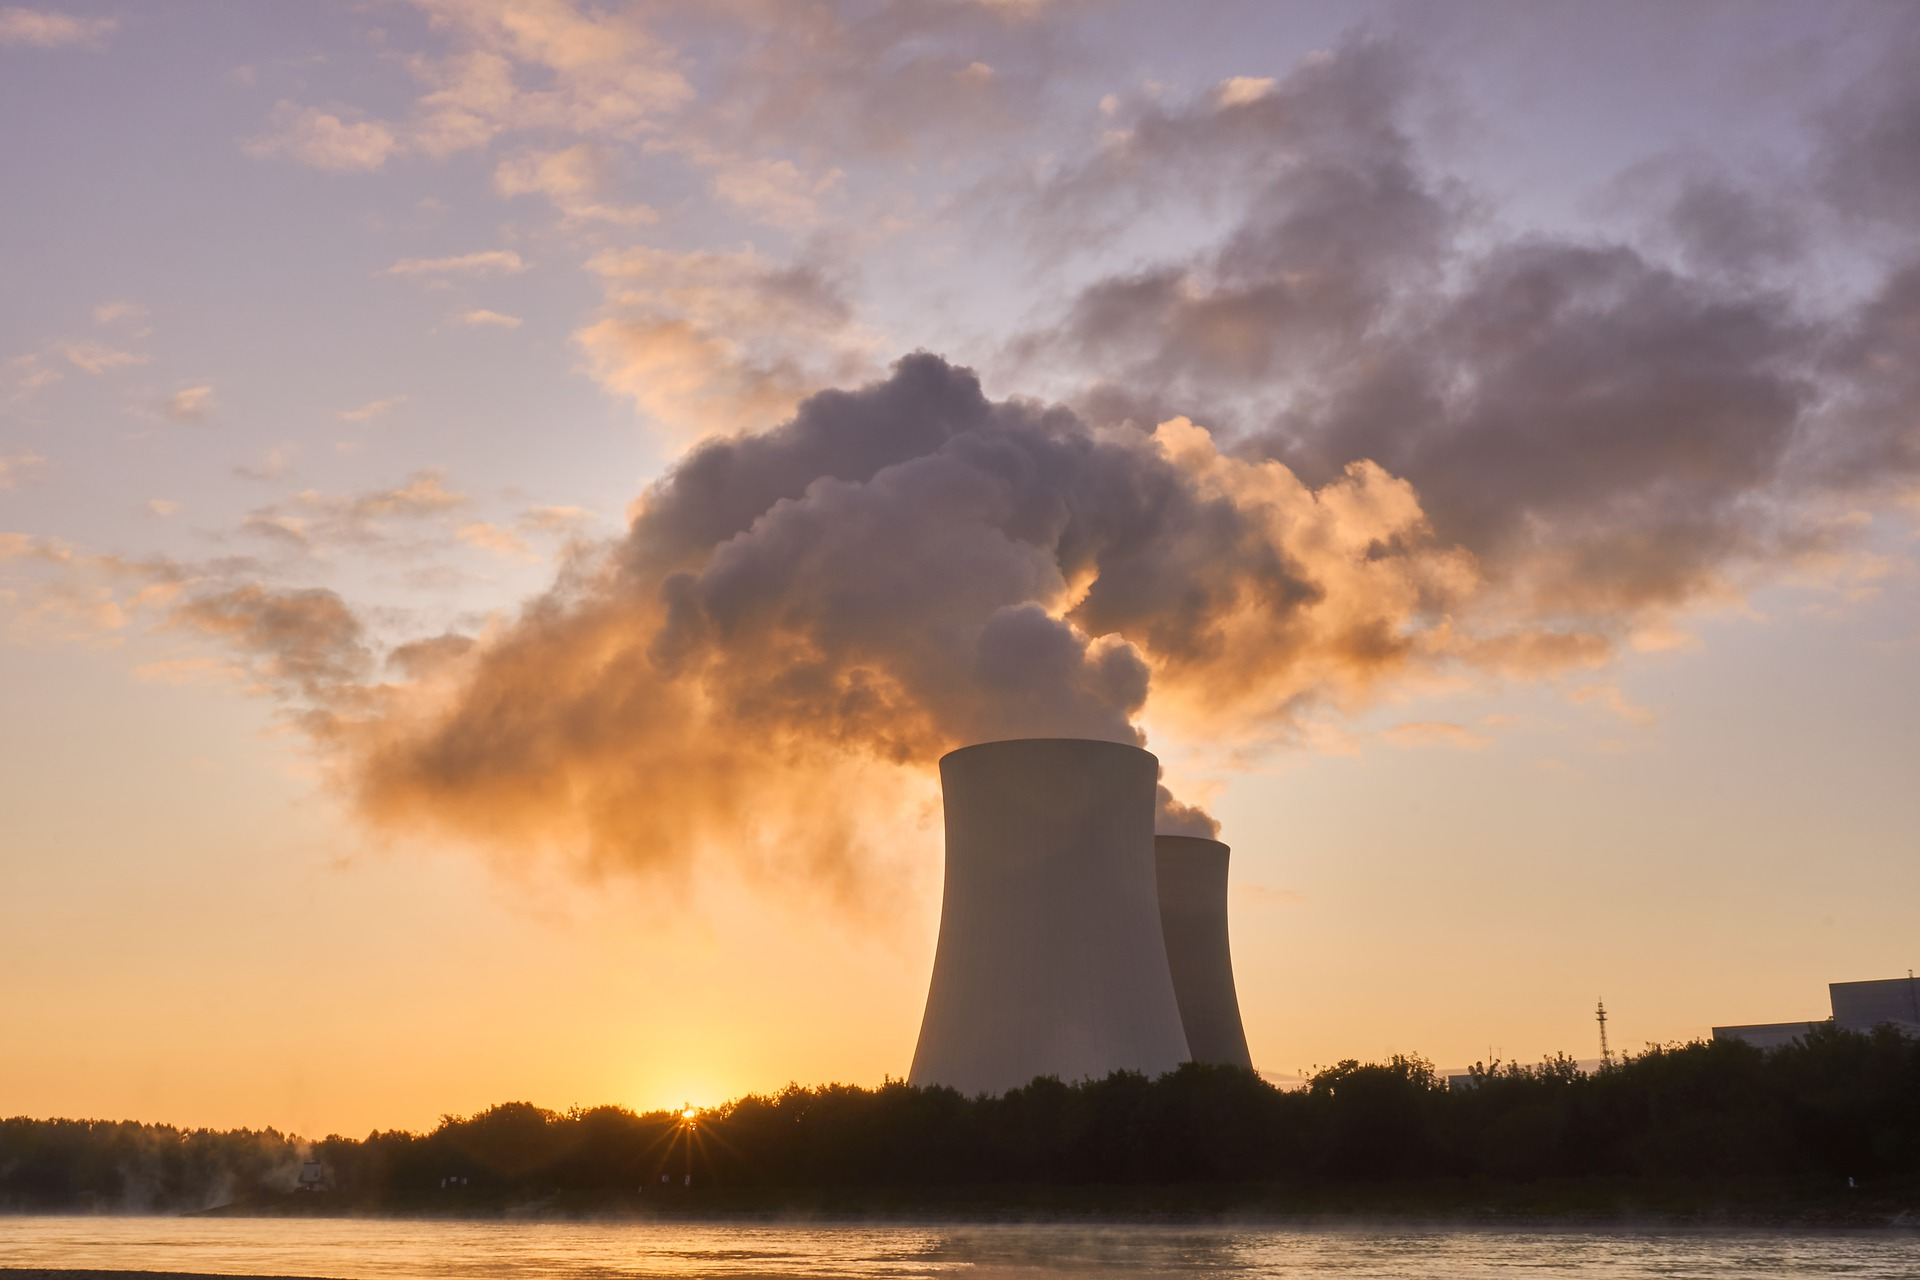 nuclear-power-plant-4535760_1920